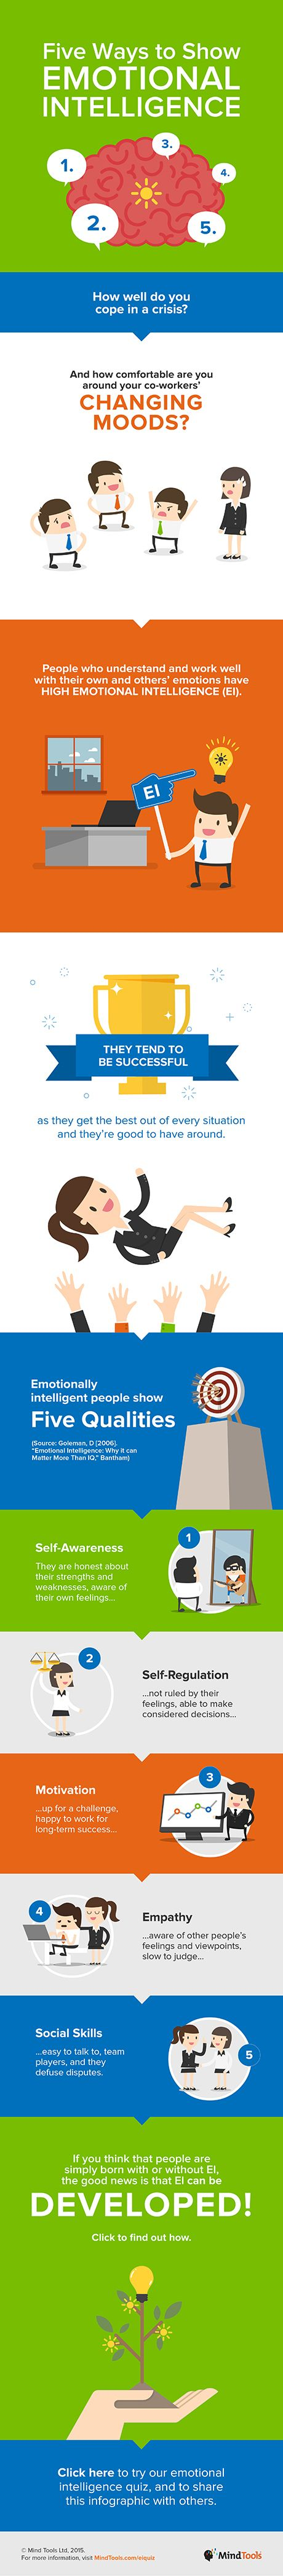 five ways to show emotional intelligence leadership emotional intelligence